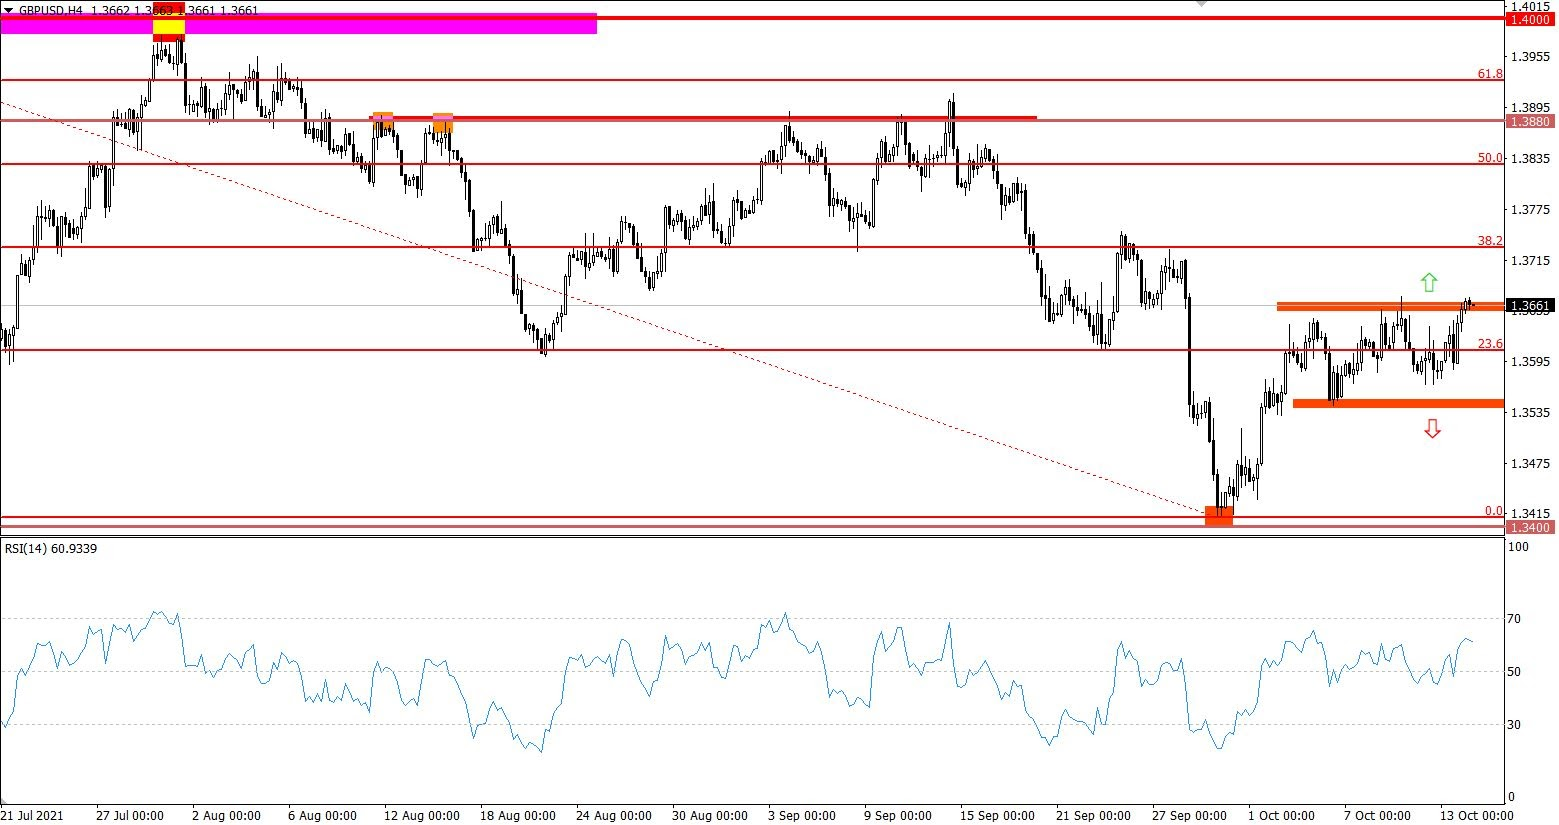 Technical analysis of the GBP / USD chart in 4 hours.